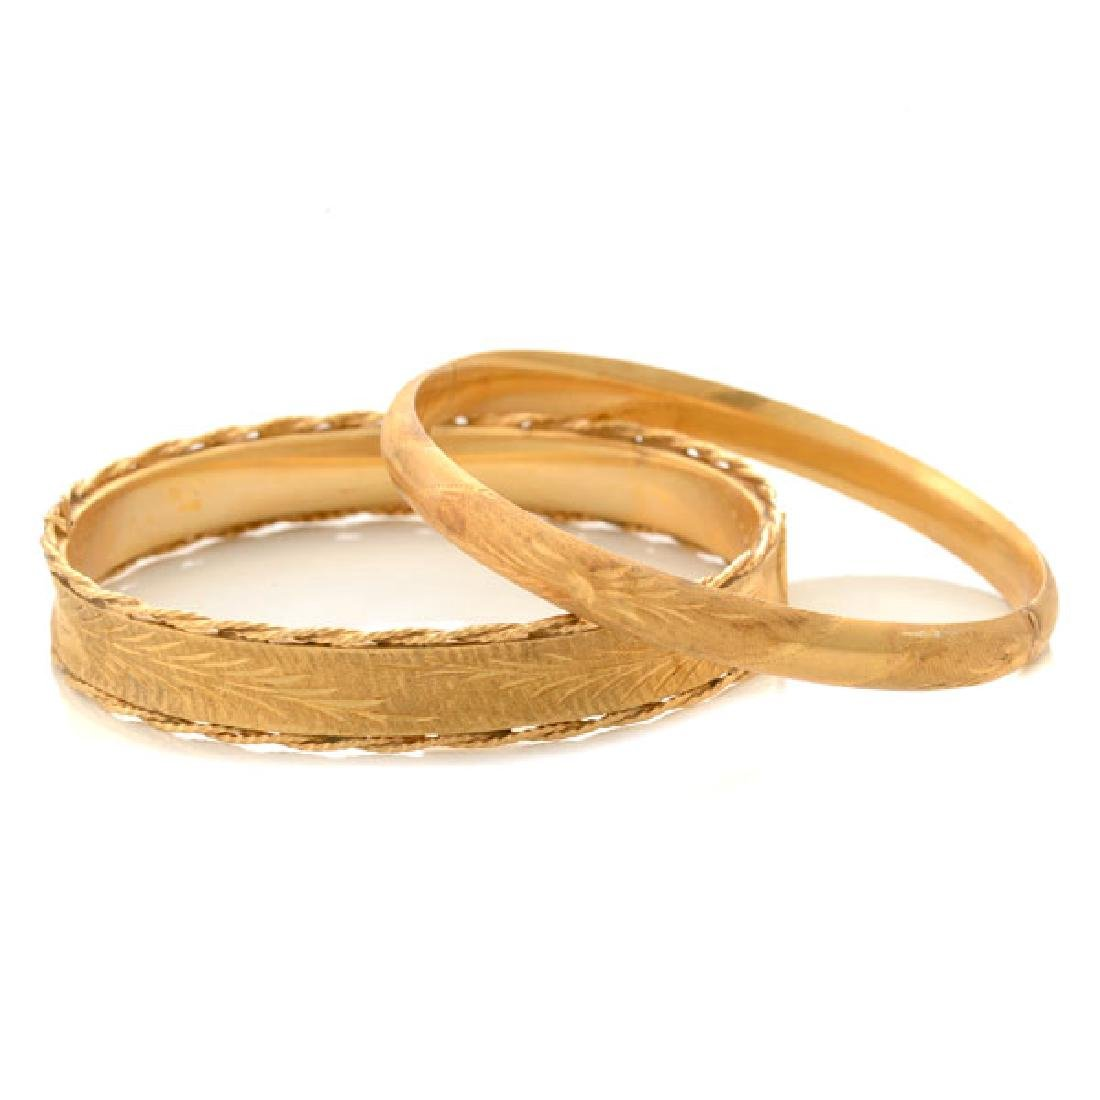 Collection of Two 14k Yellow Gold Bracelets.